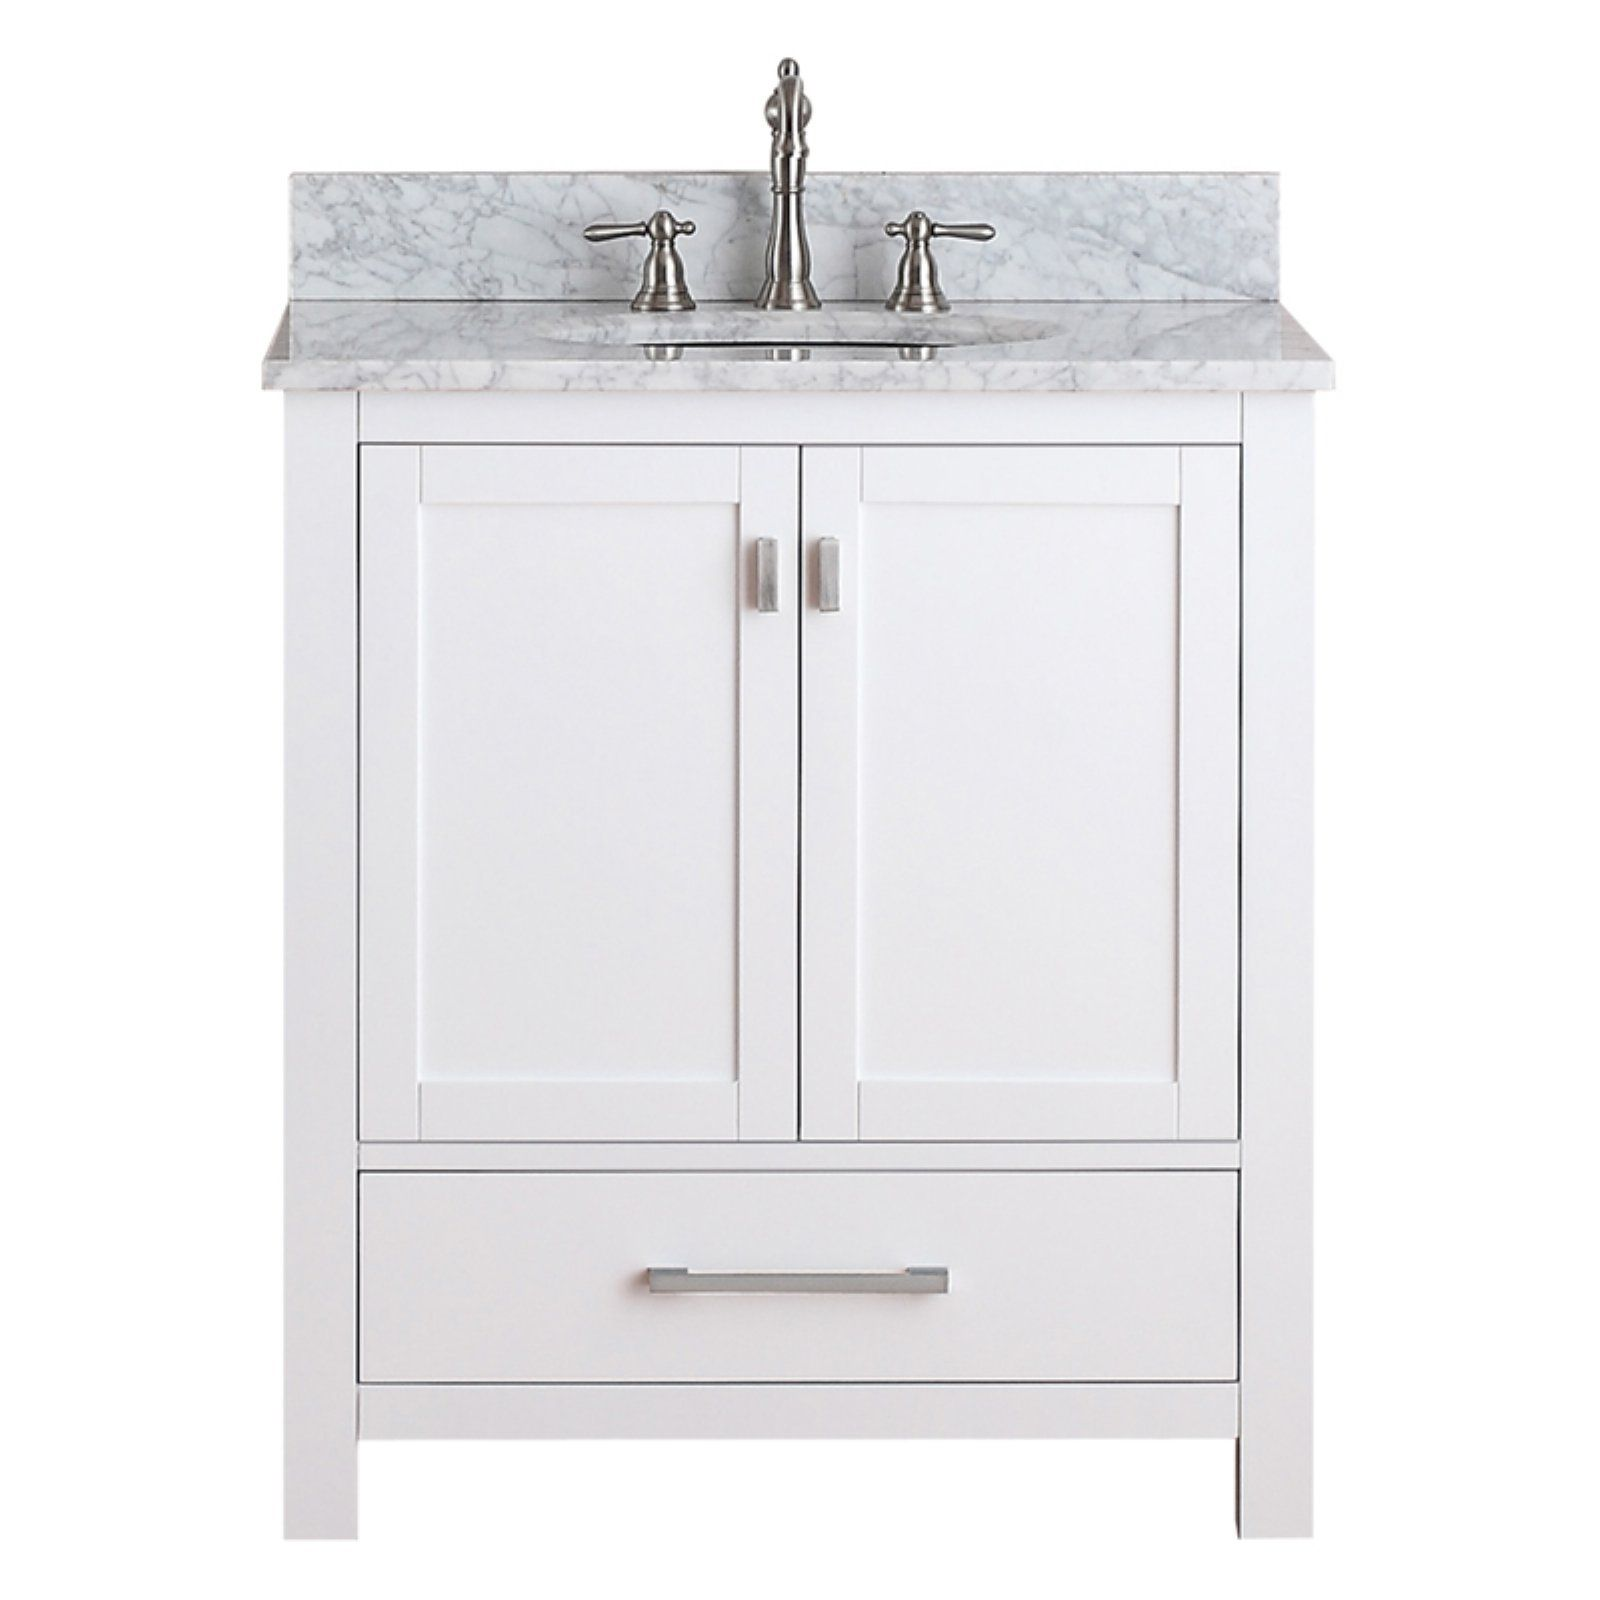 Avanity Modero Vs30 Wt Modero 30 In Single Bathroom Vanity Marble